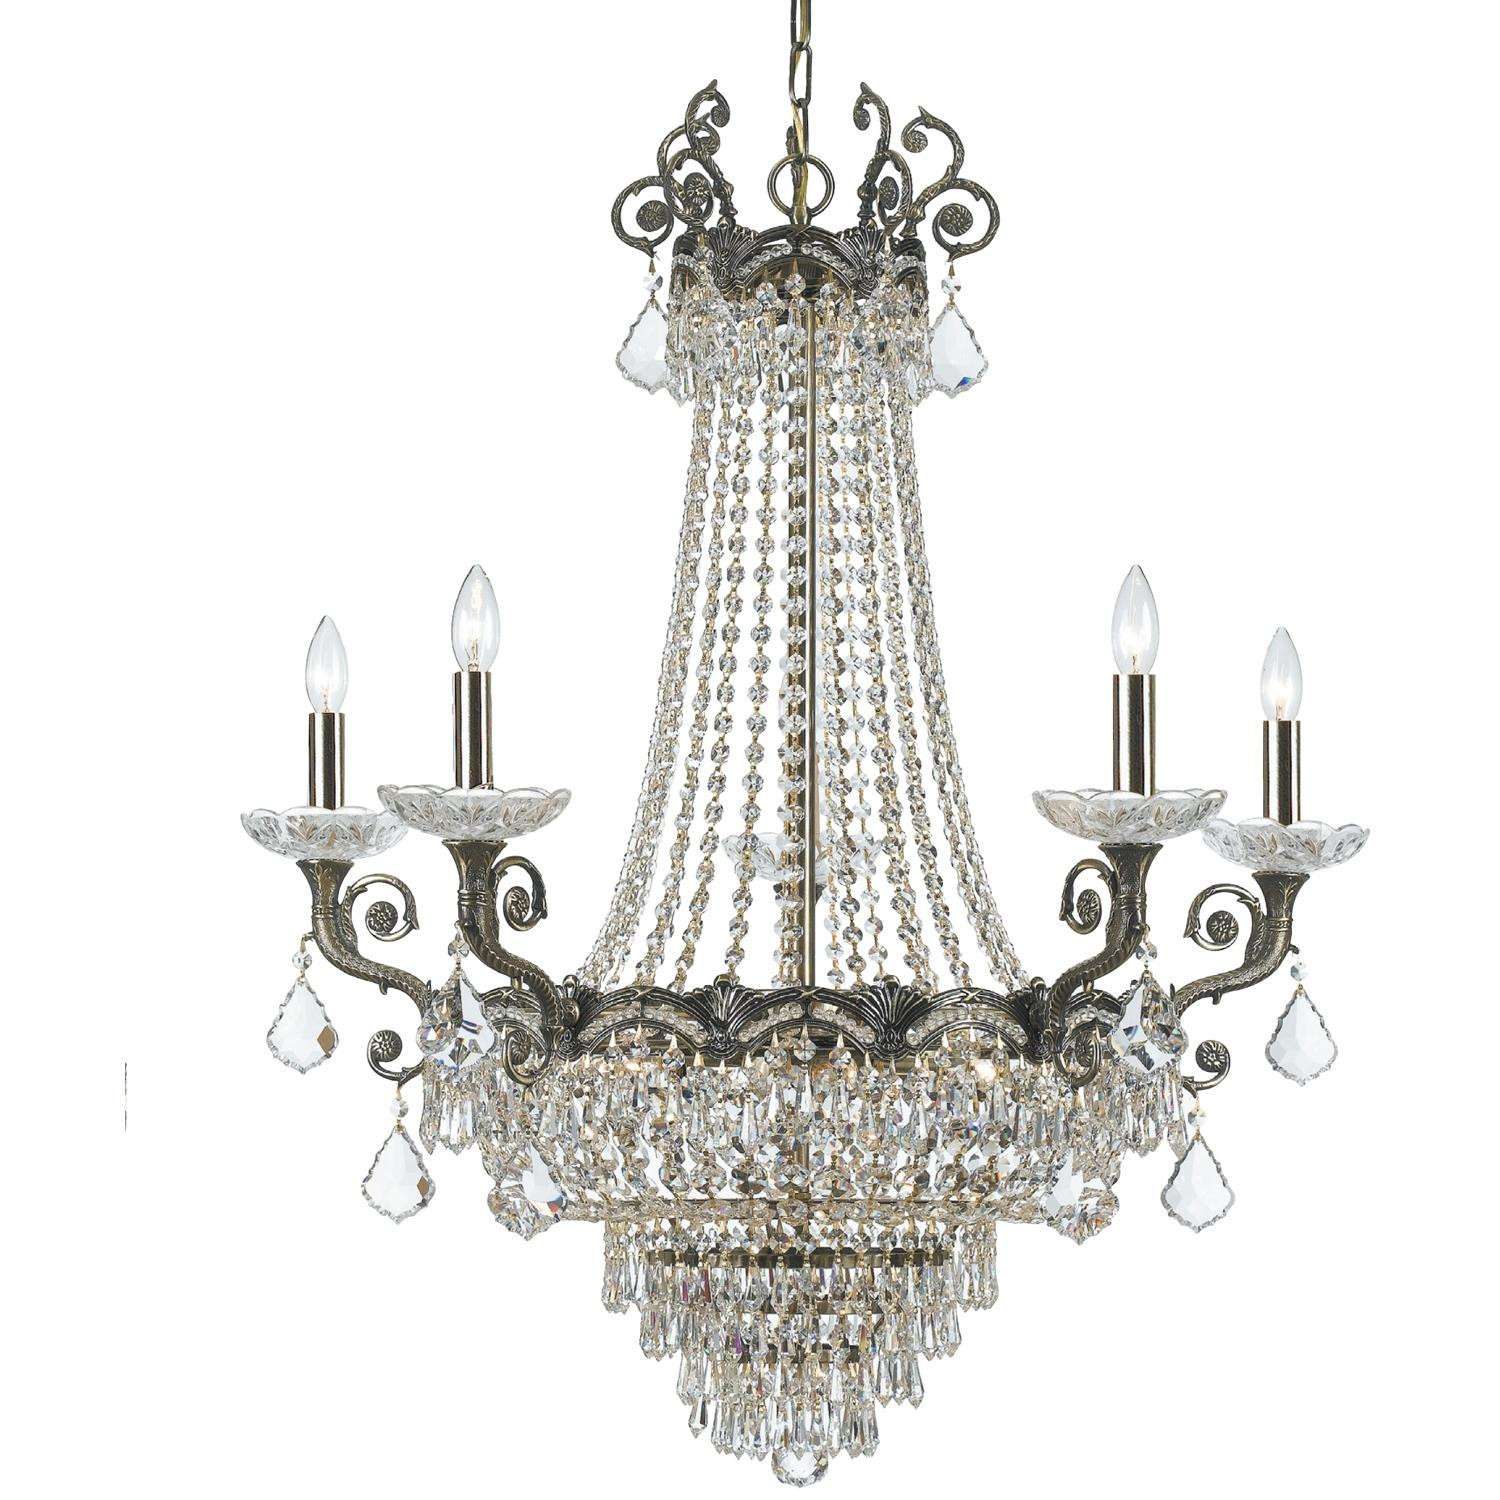 Crystorama 1486-HB-CL-S Sold Cast Brass Ornate Crystal Chandelier